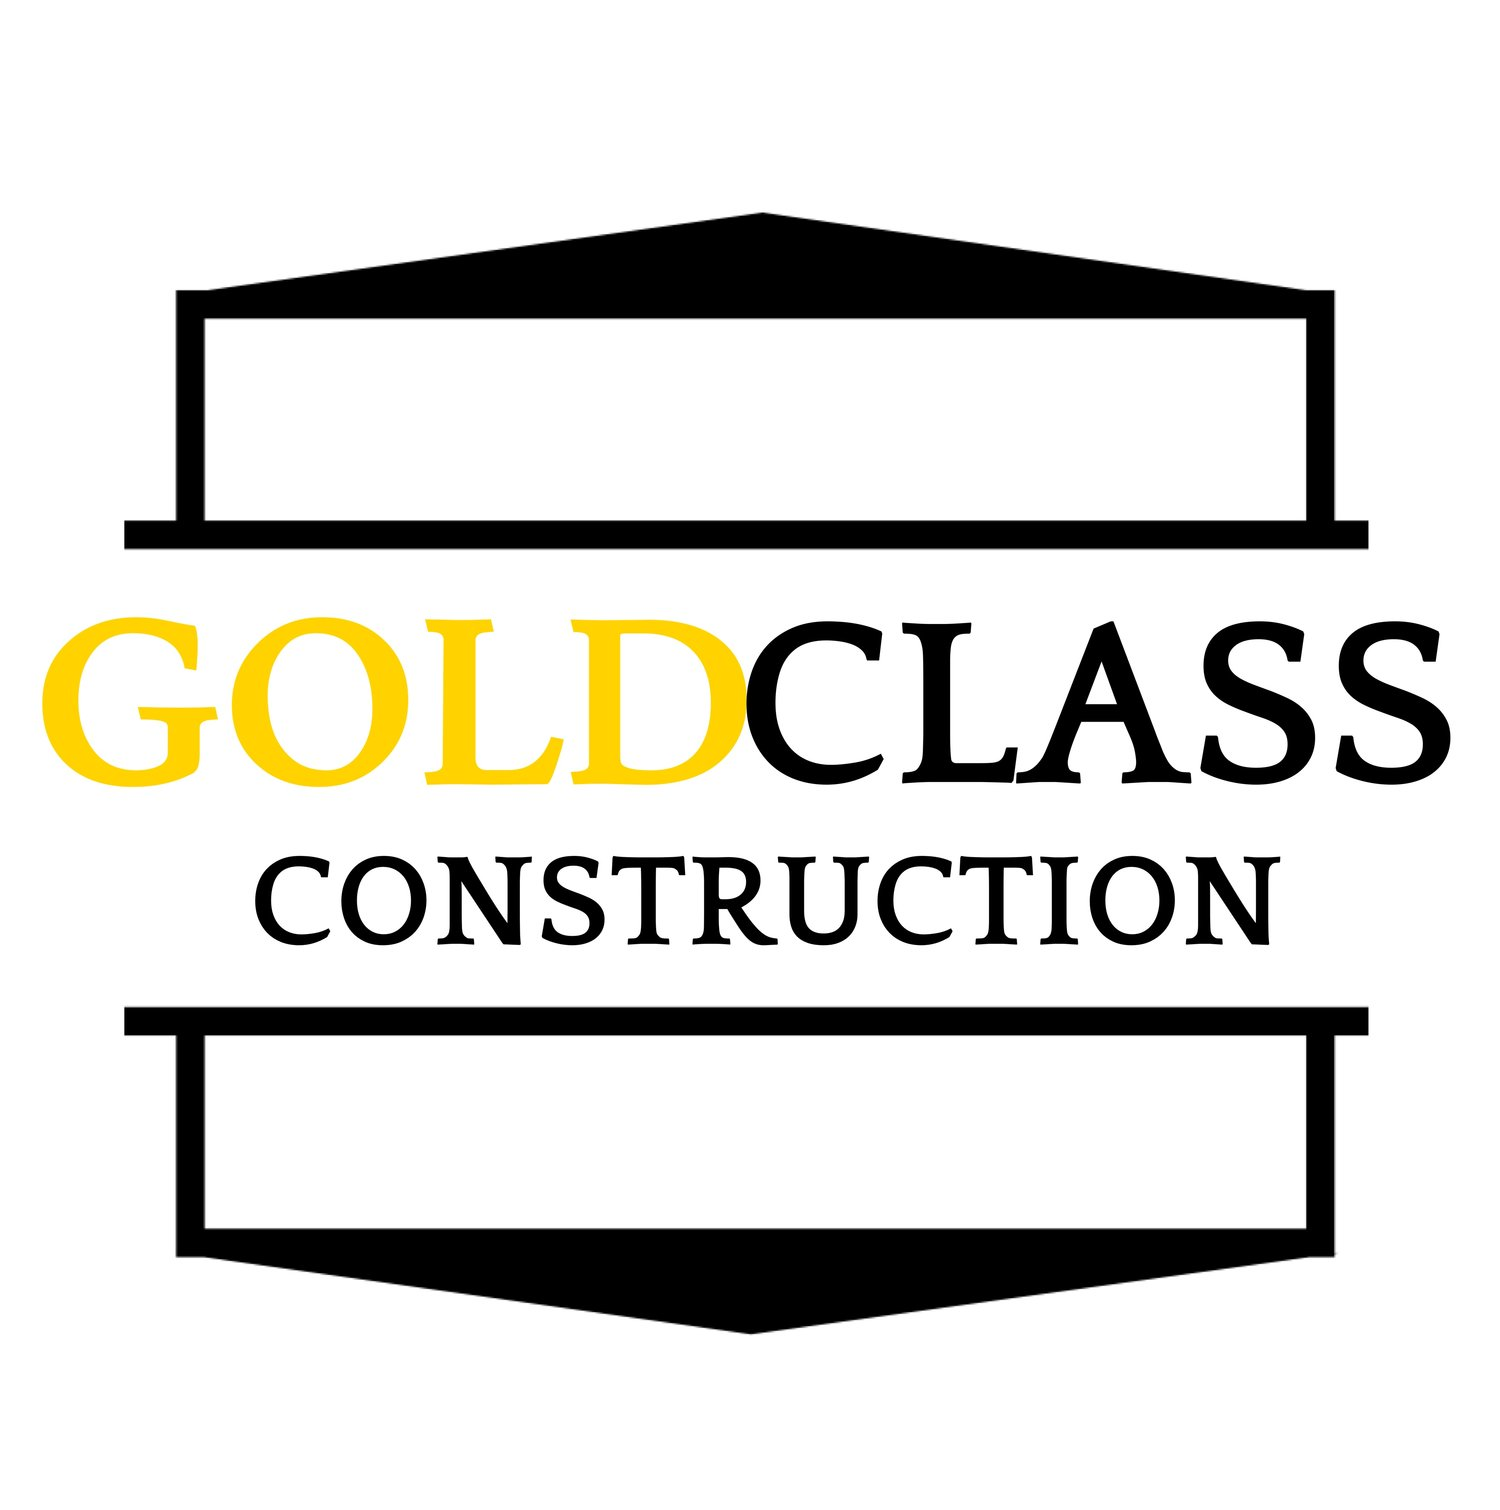 GOLD CLASS CONSTRUCTION